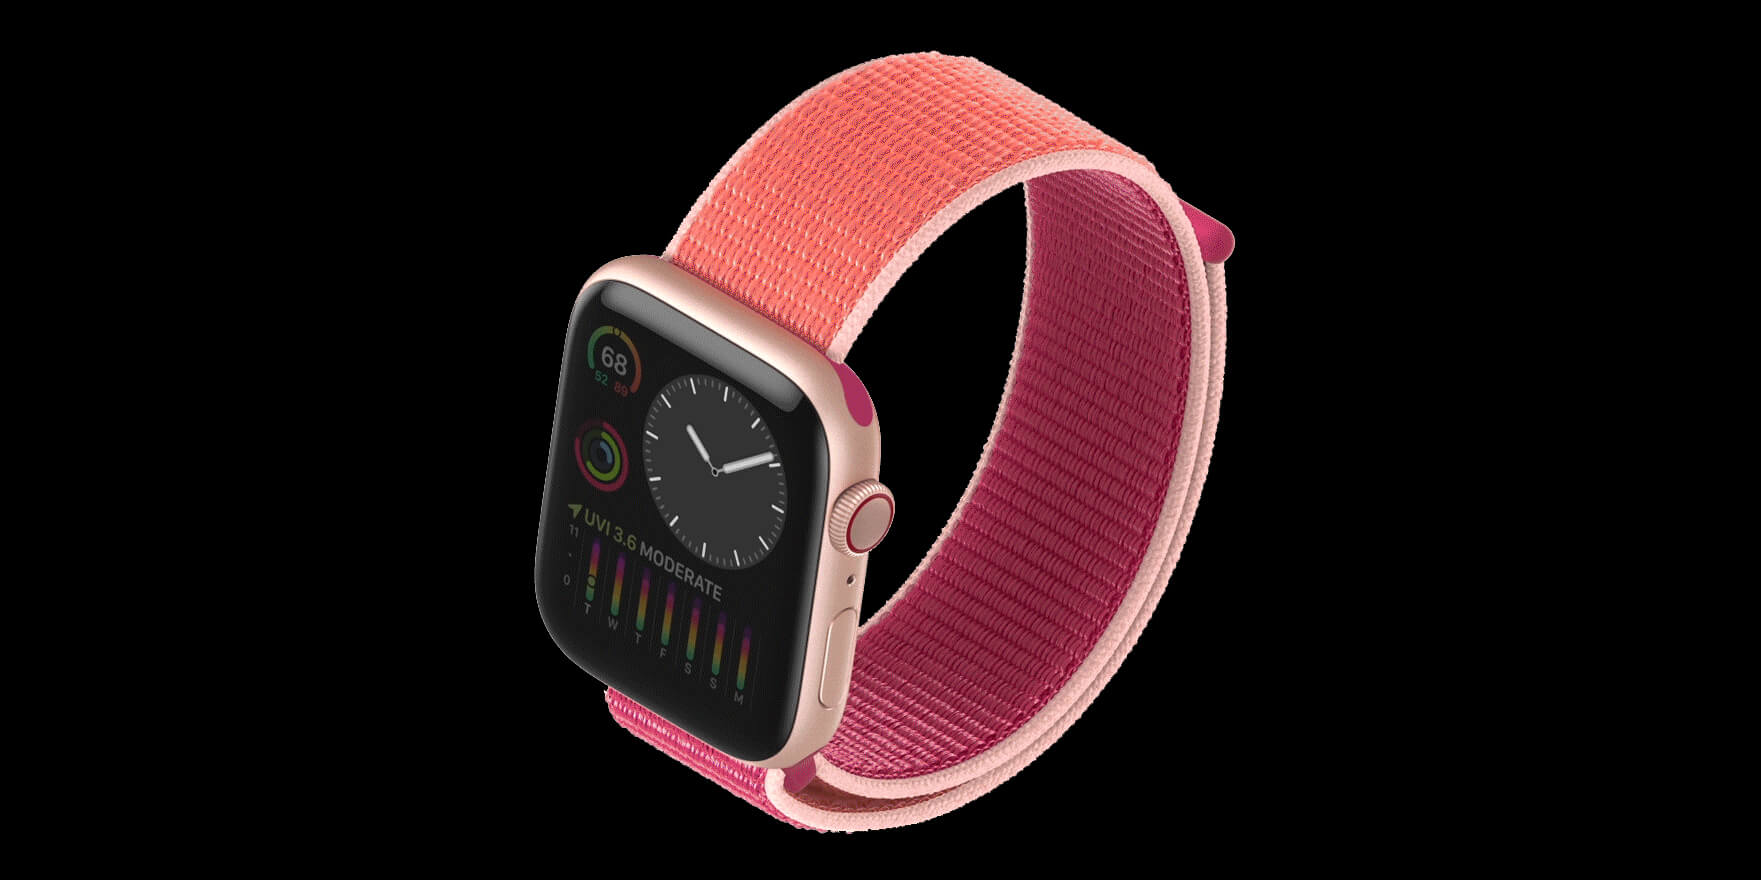 Apple Watch Series 5 mit Always-On-Display - Image by Apple